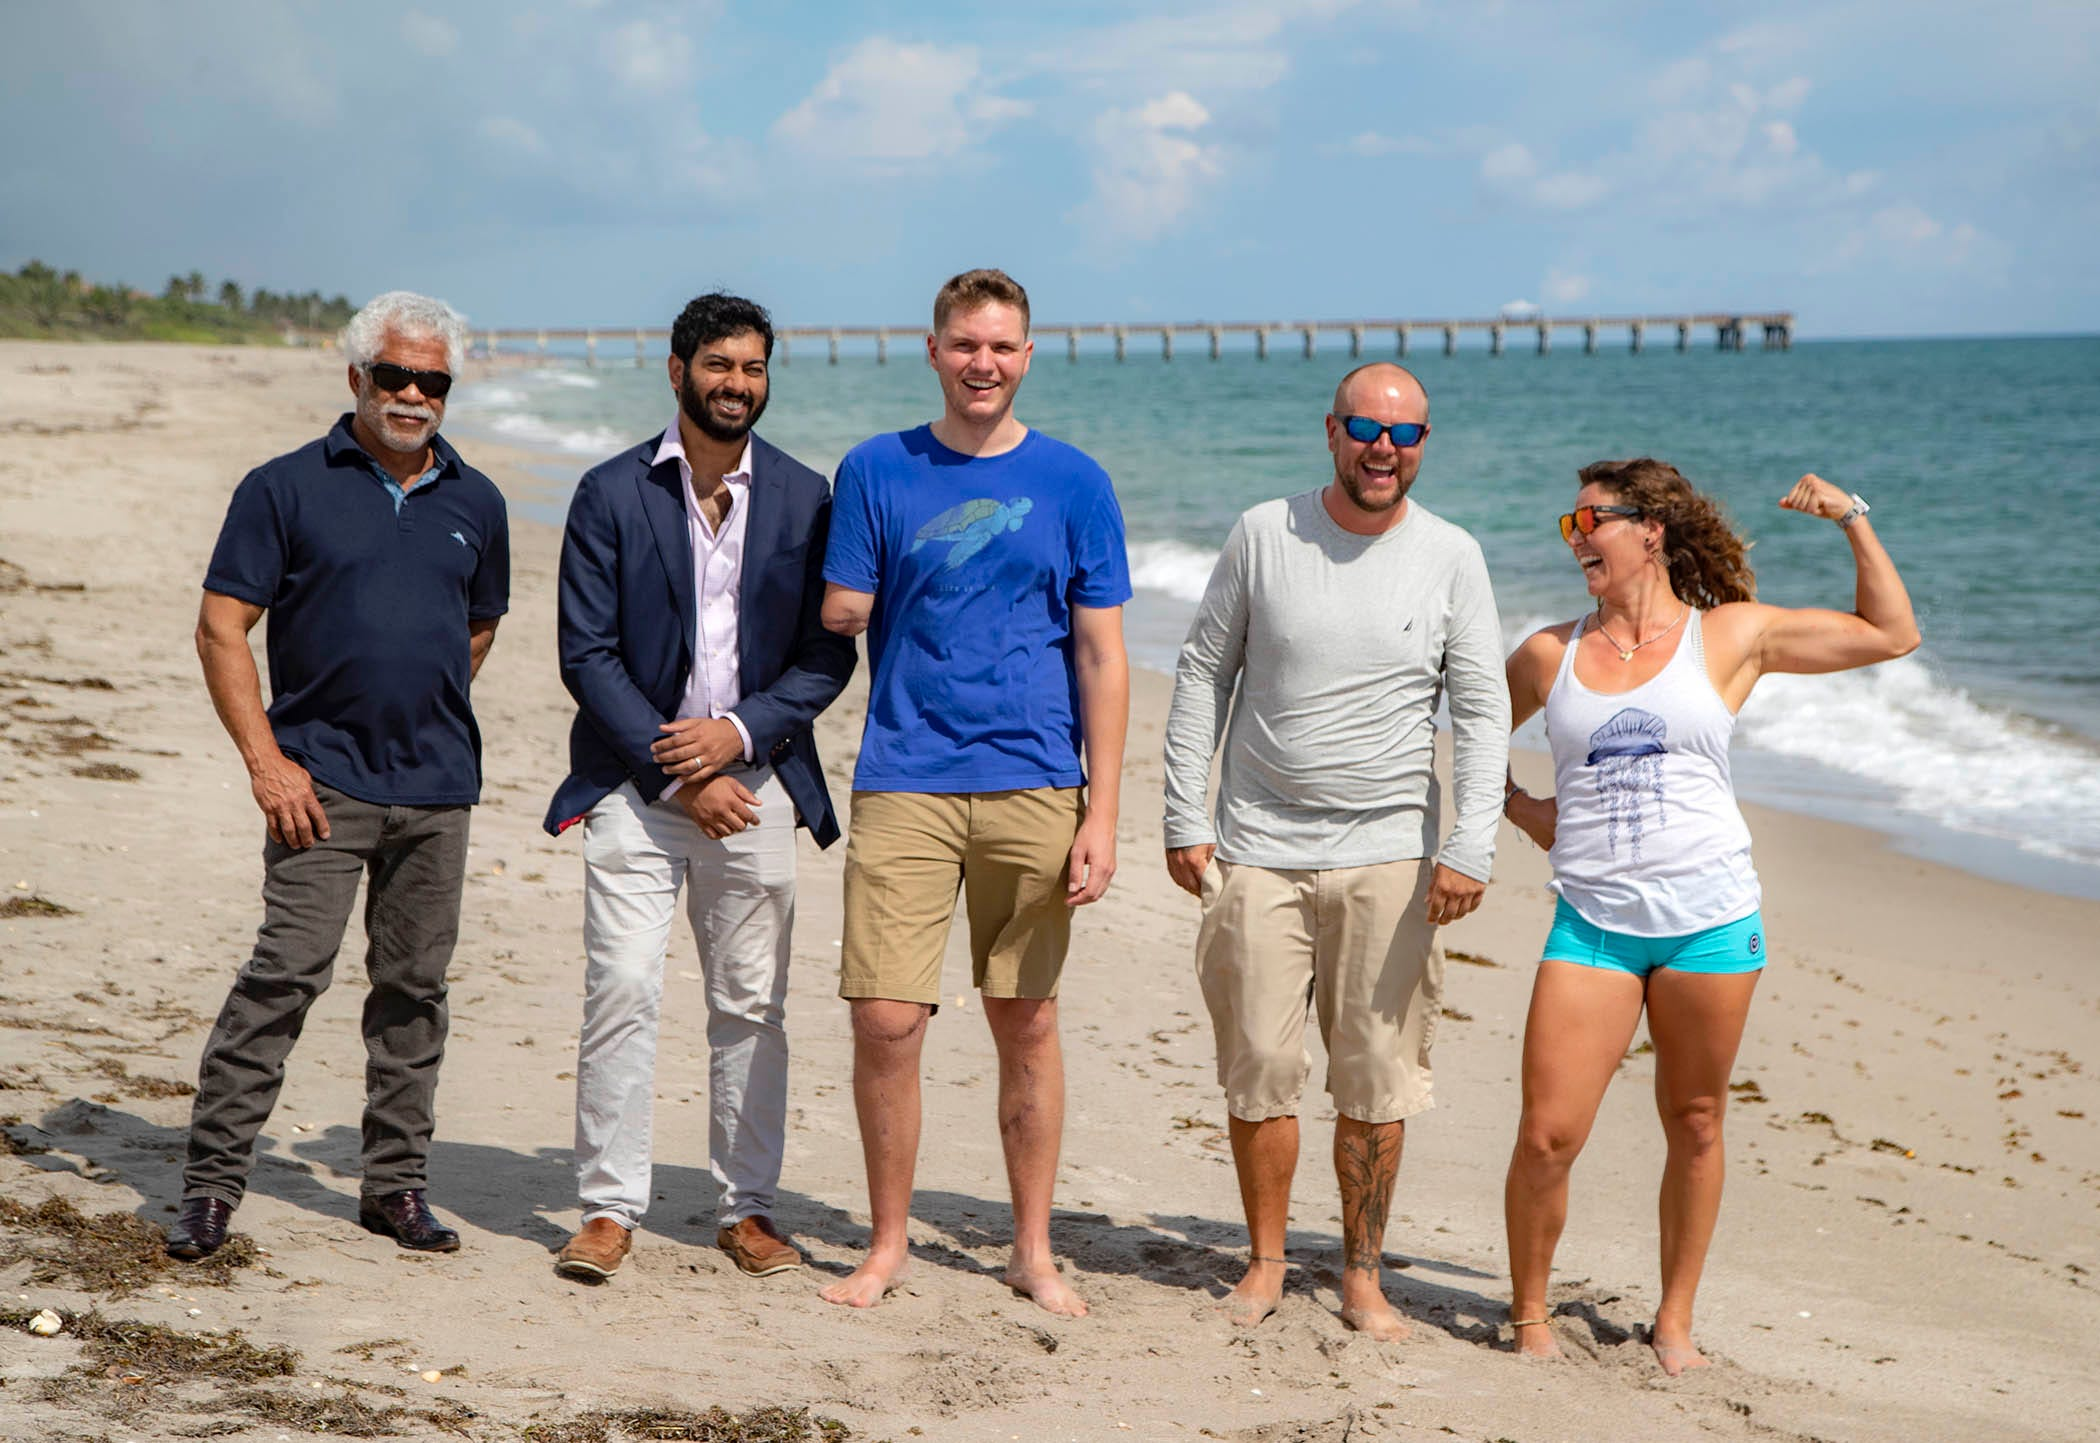 At their 10-month reunion, Dr. Robert Borrego, from left, Dr. Dilhan Abeyewardene, Carter Viss, Andy Earl and Christine Raininger meet on the beach. The doctors from St. Mary's Medical Center saved Viss' legs and repaired his broken hand after the Thanksgiving Day 2019 accident. To get him to the hospital alive, his friend, Earl, kept him afloat while Raininger, a stranger, tied a tourniquet on his severed arm.